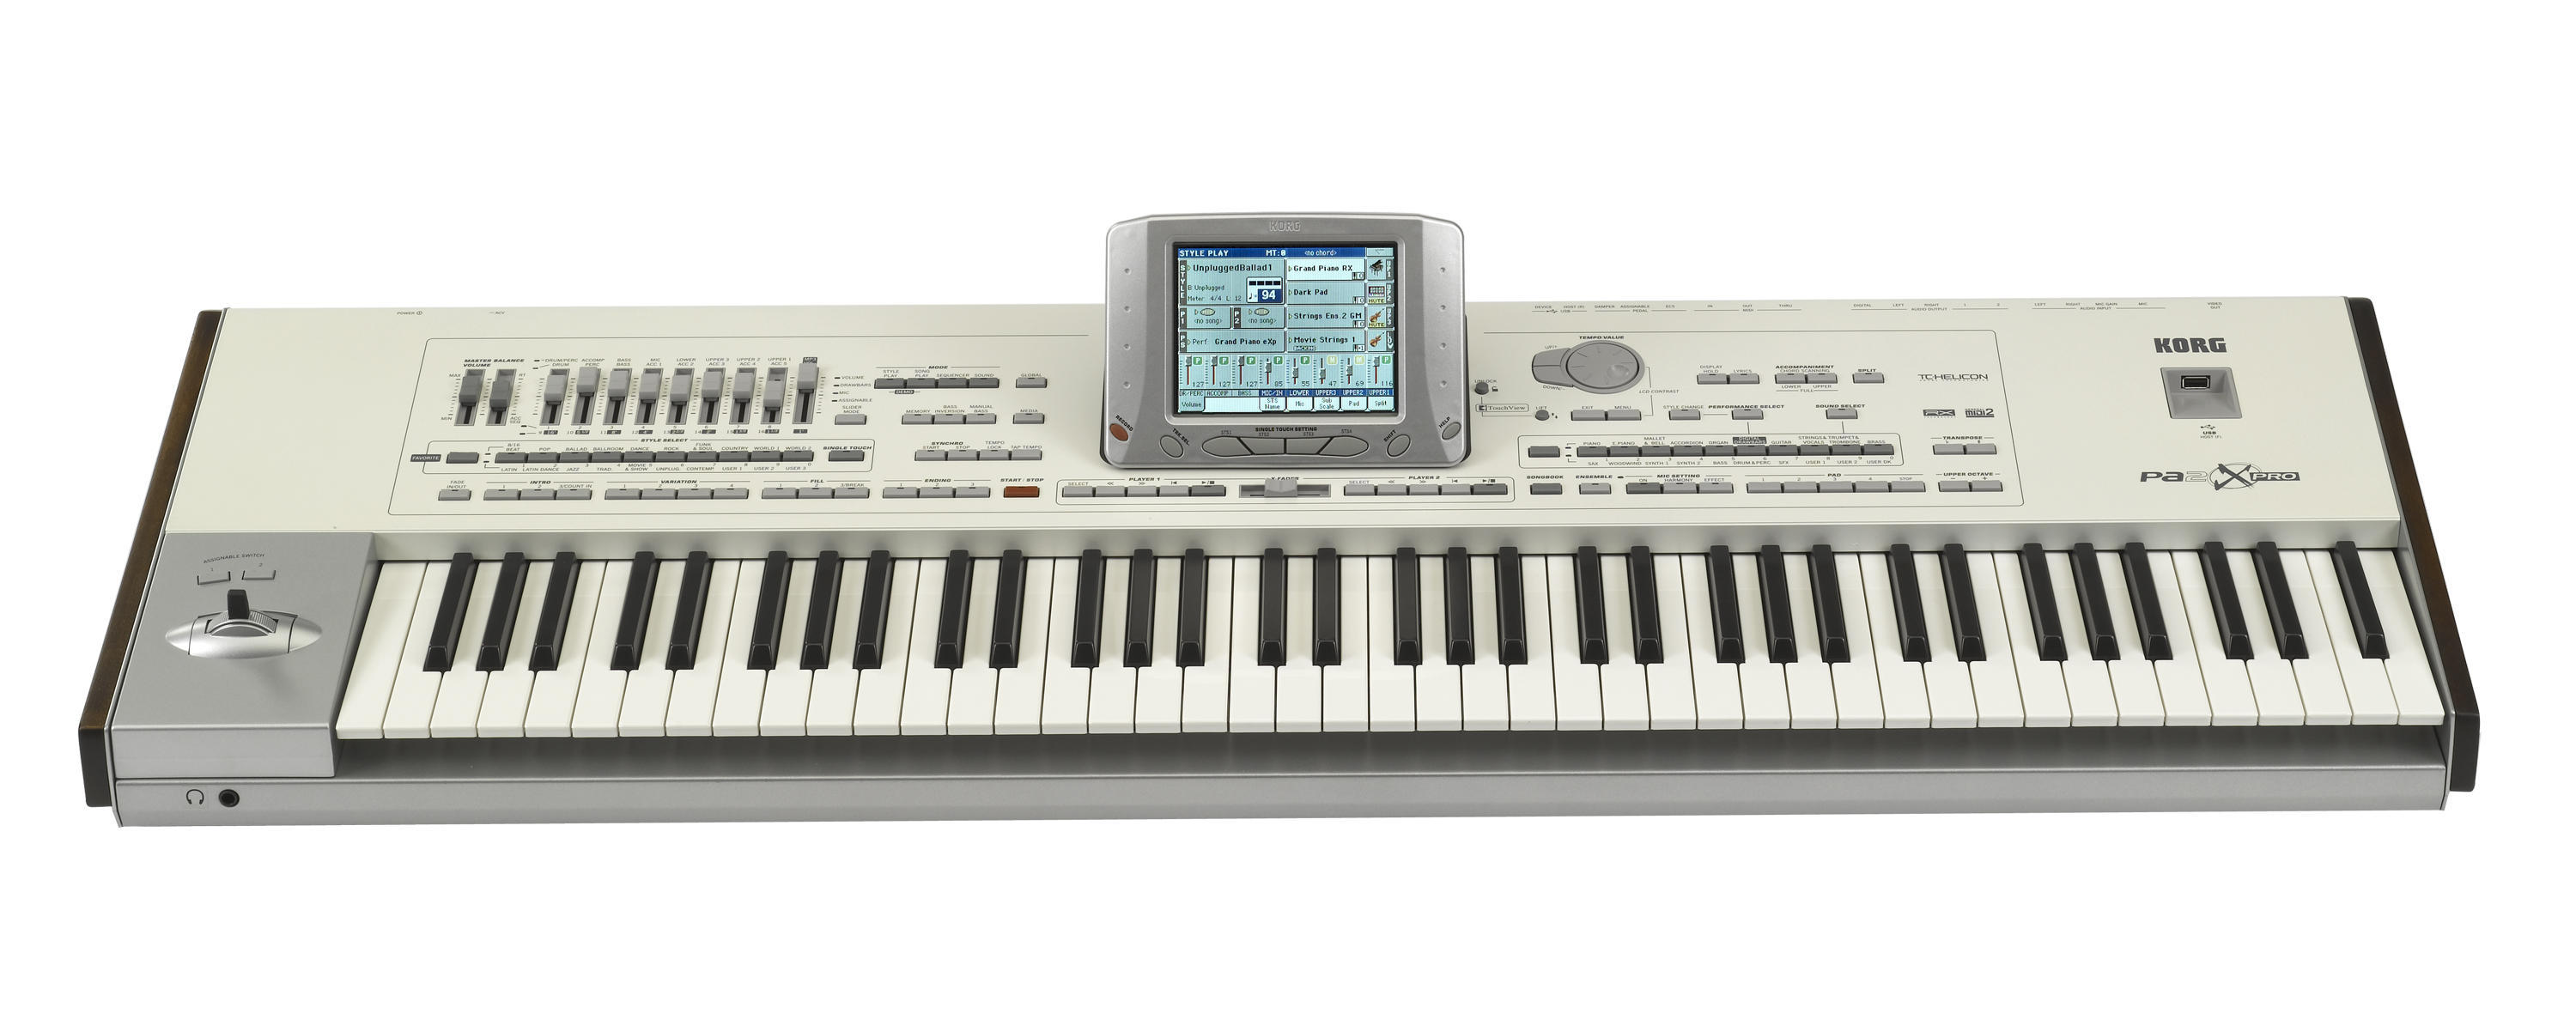 Casio keyboard price in bangalore dating 2